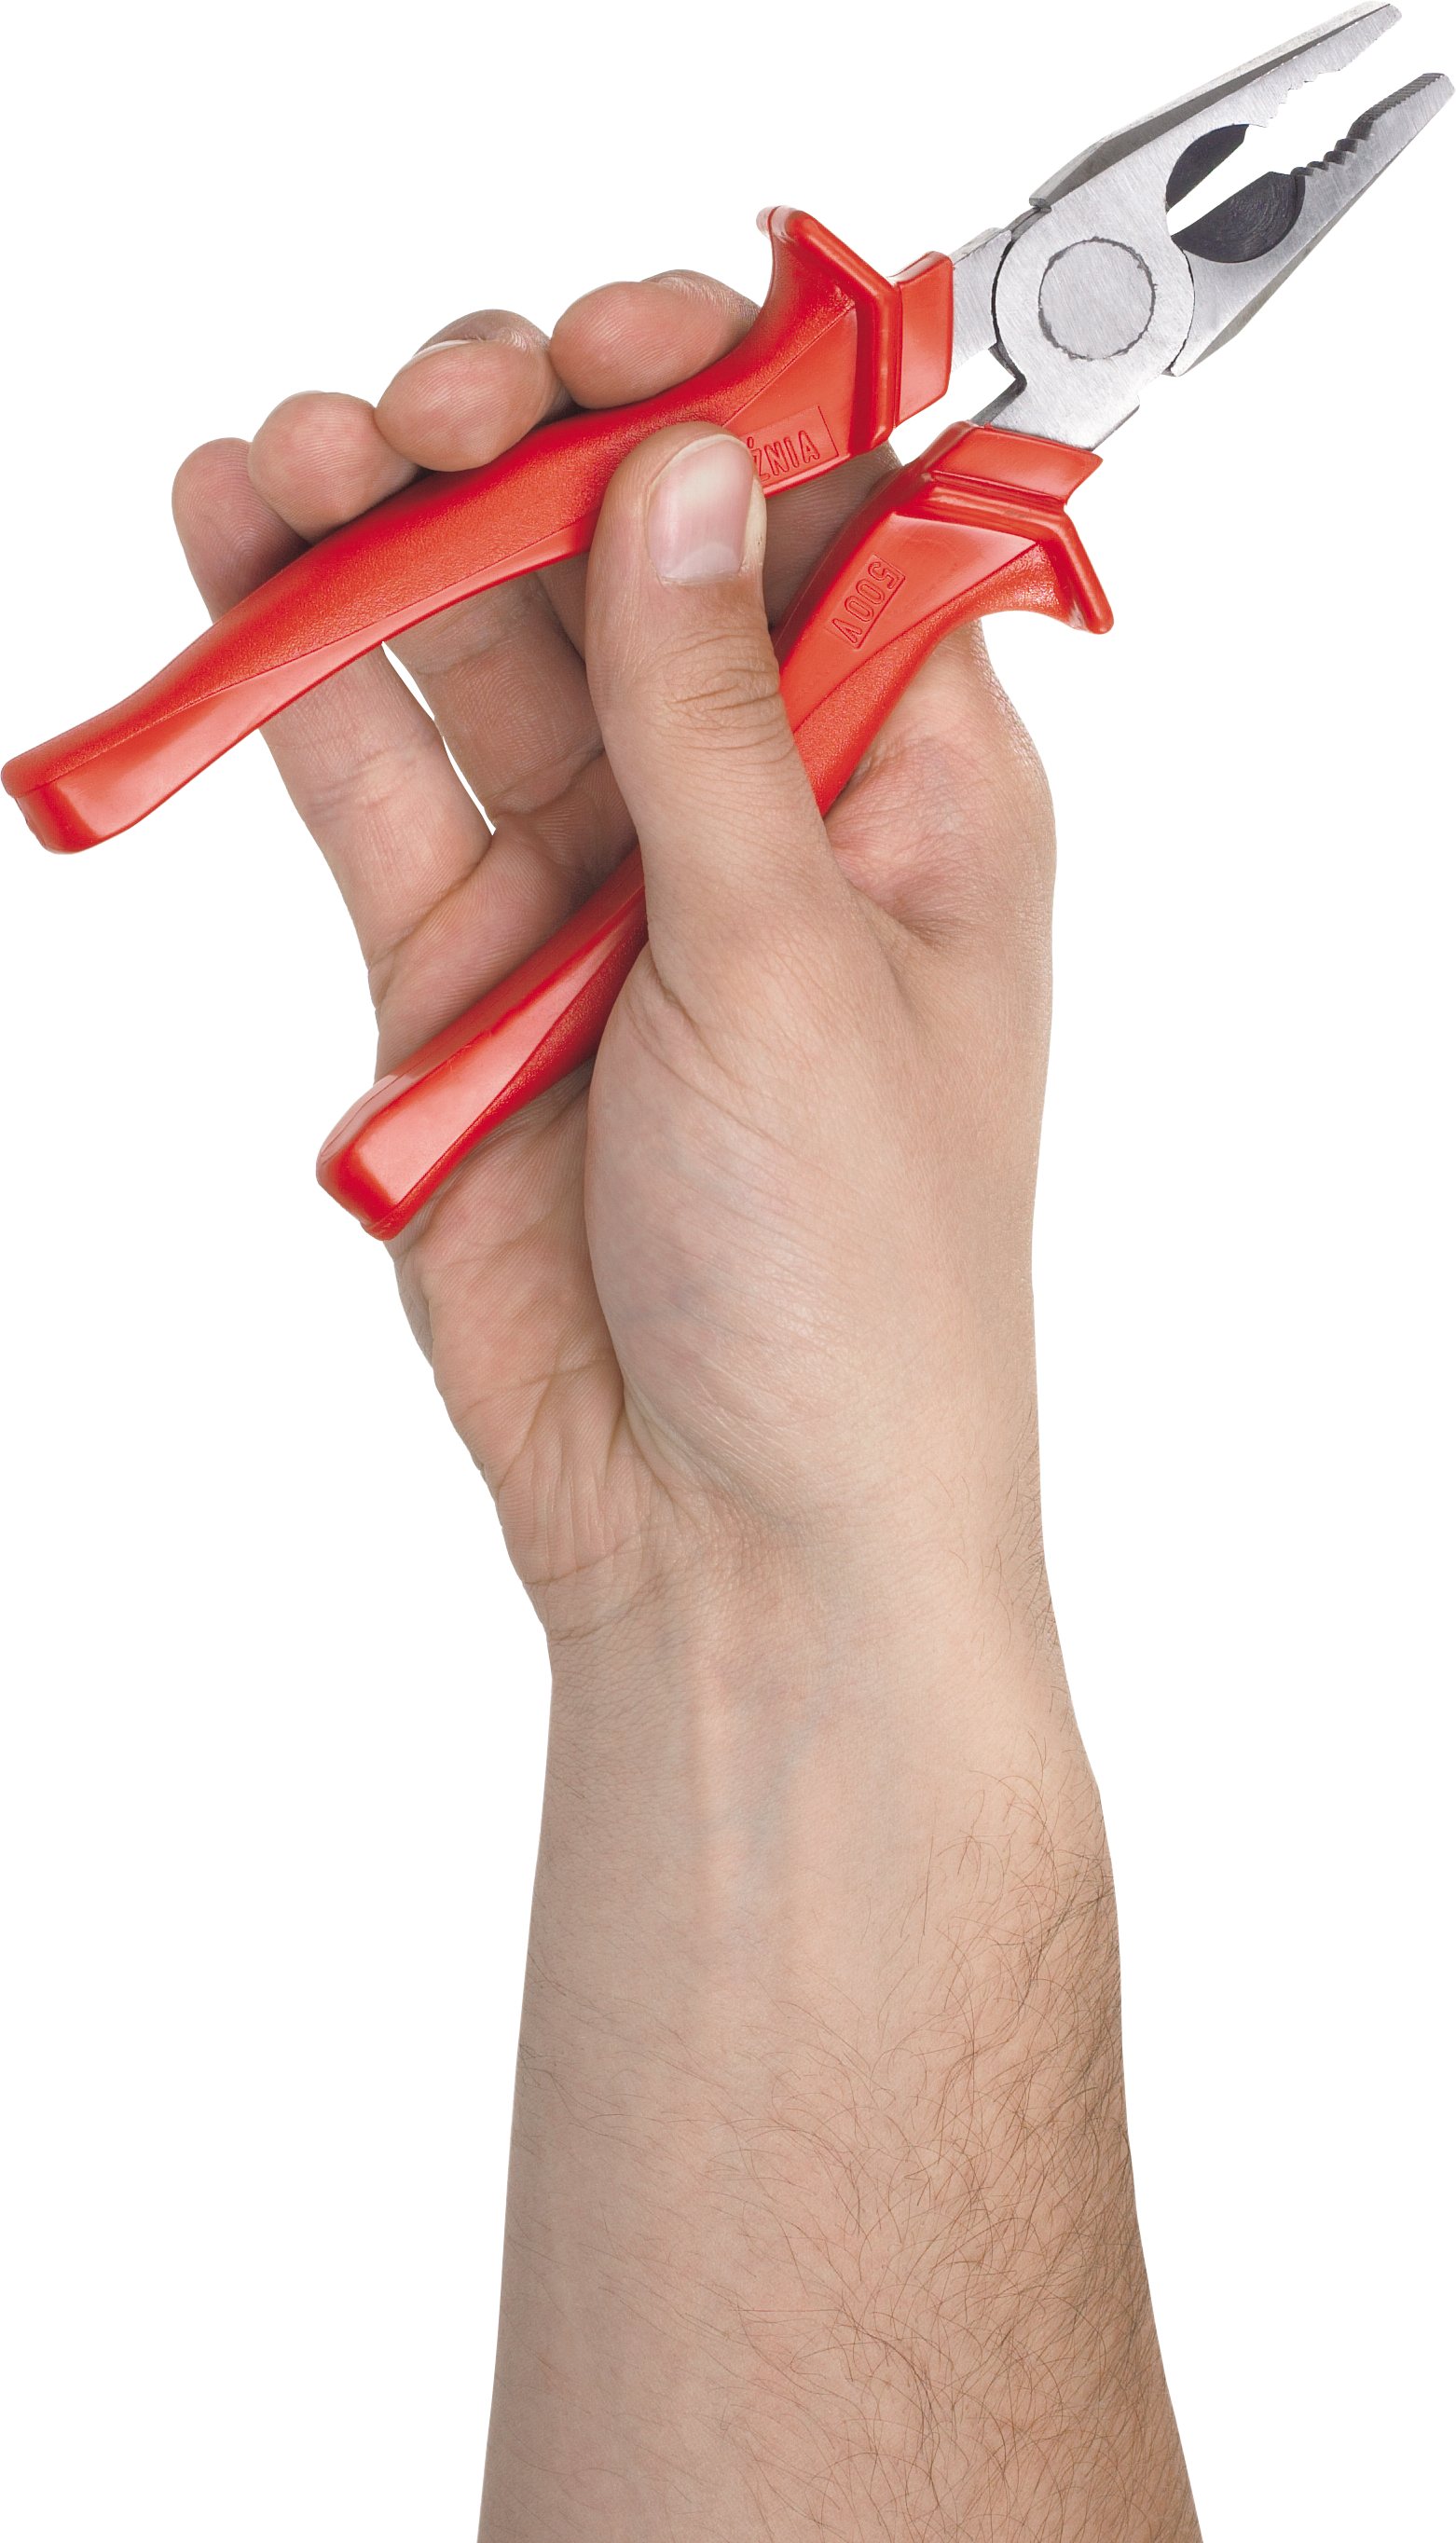 Plier in hand PNG image